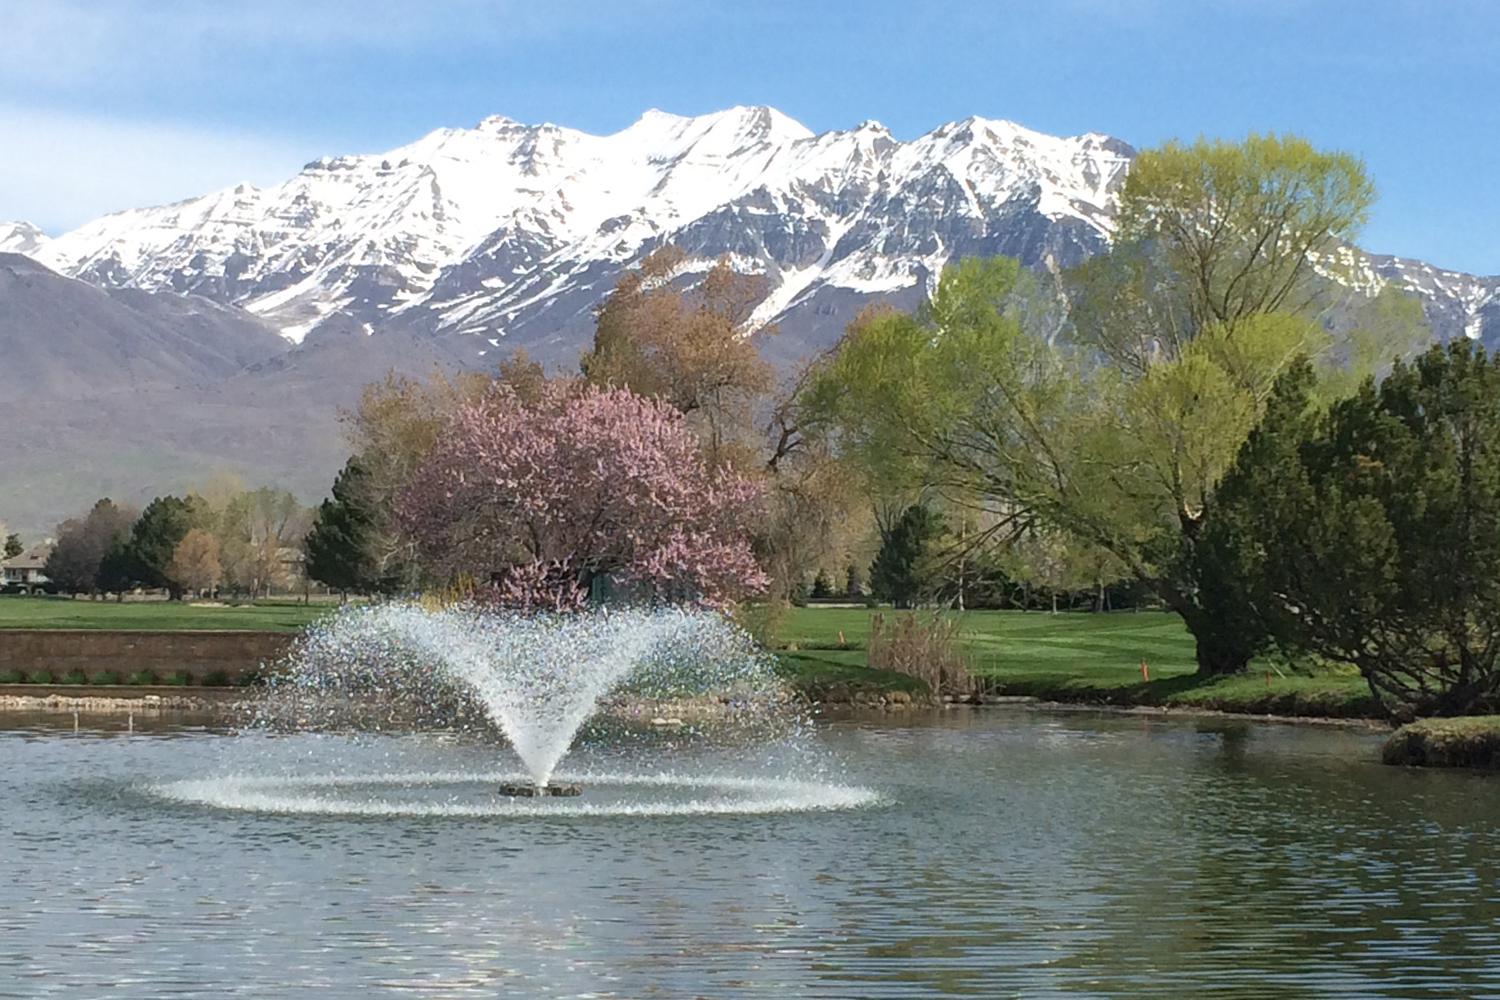 One of Otterbine's Sunburst Aerating Fountains in a beautiful park